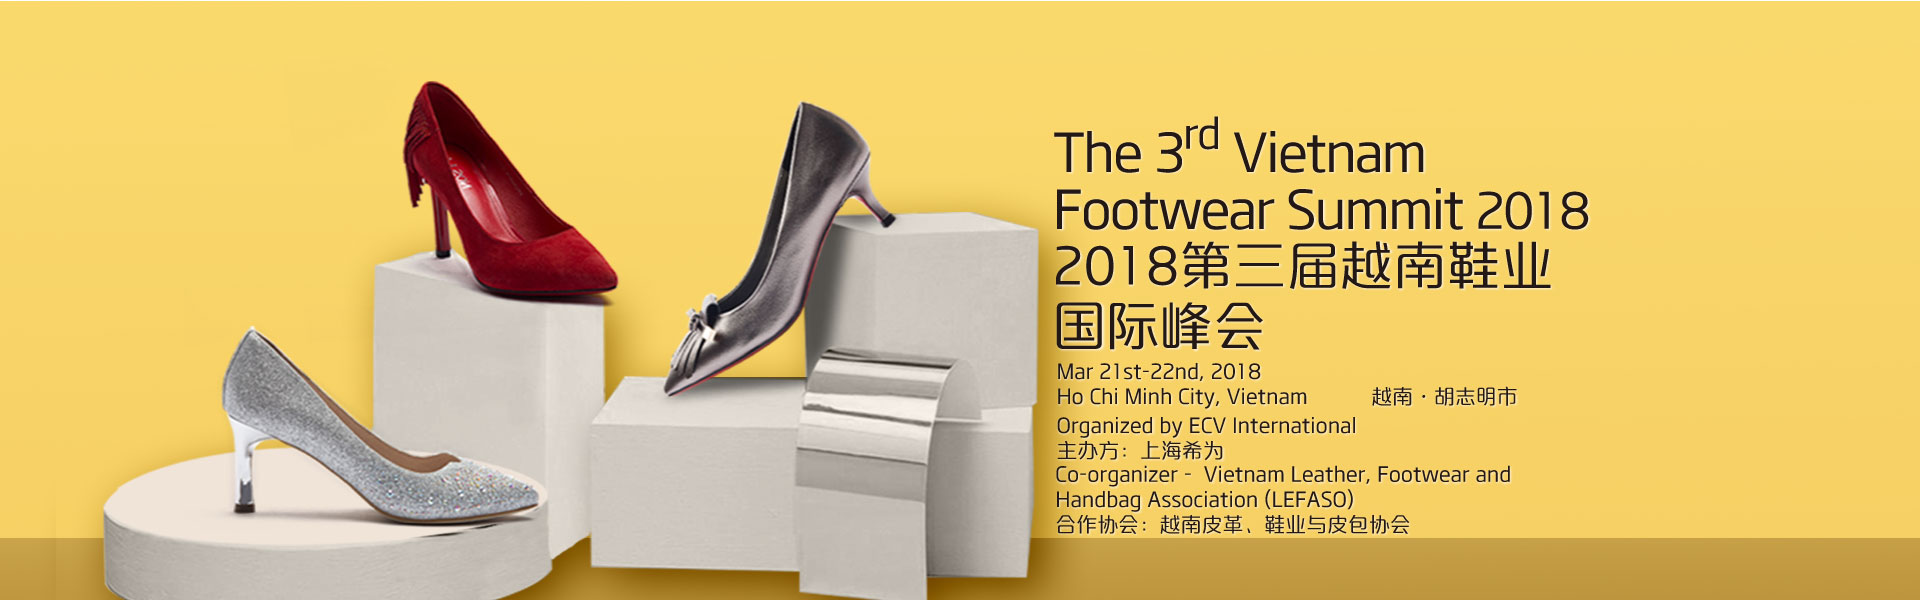 Vietnam Footwear Summit 2018